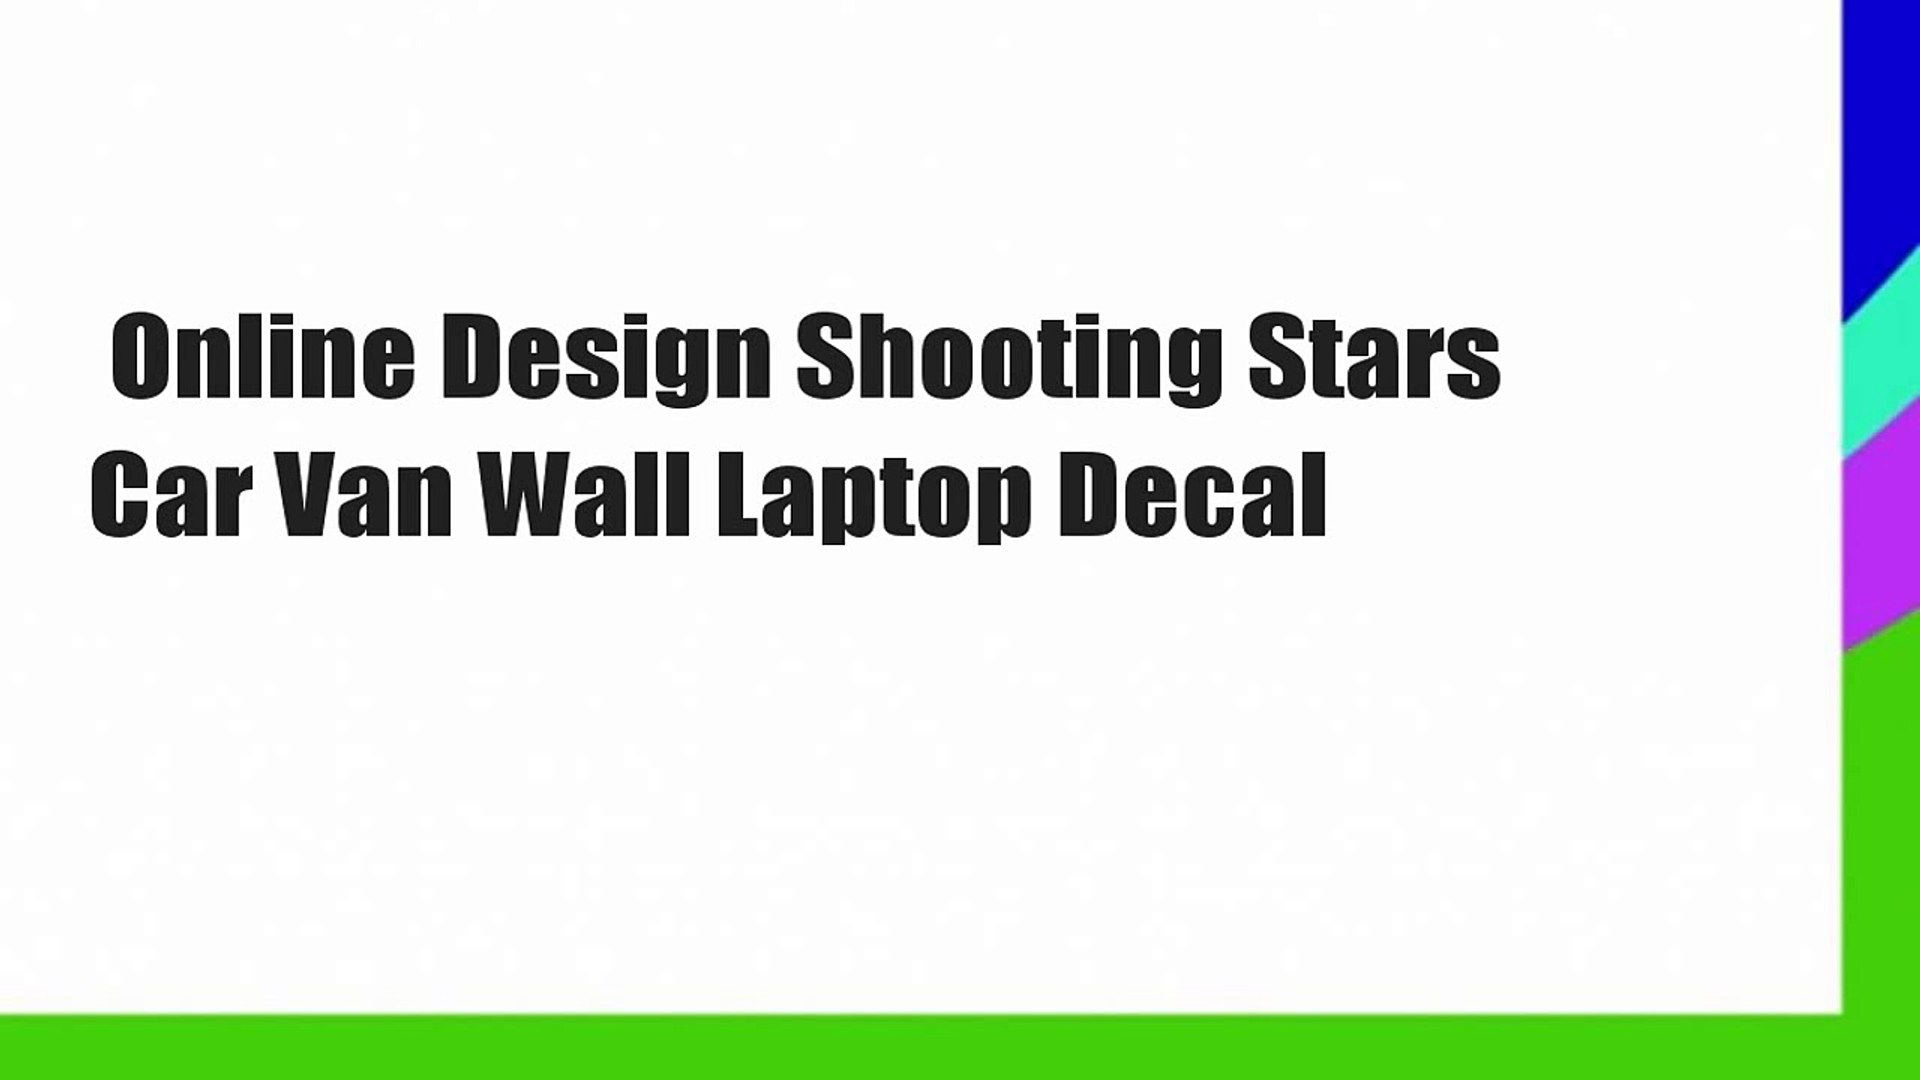 SHOOTING STARS CAR VAN WALL LAPTOP DECAL STICKERS